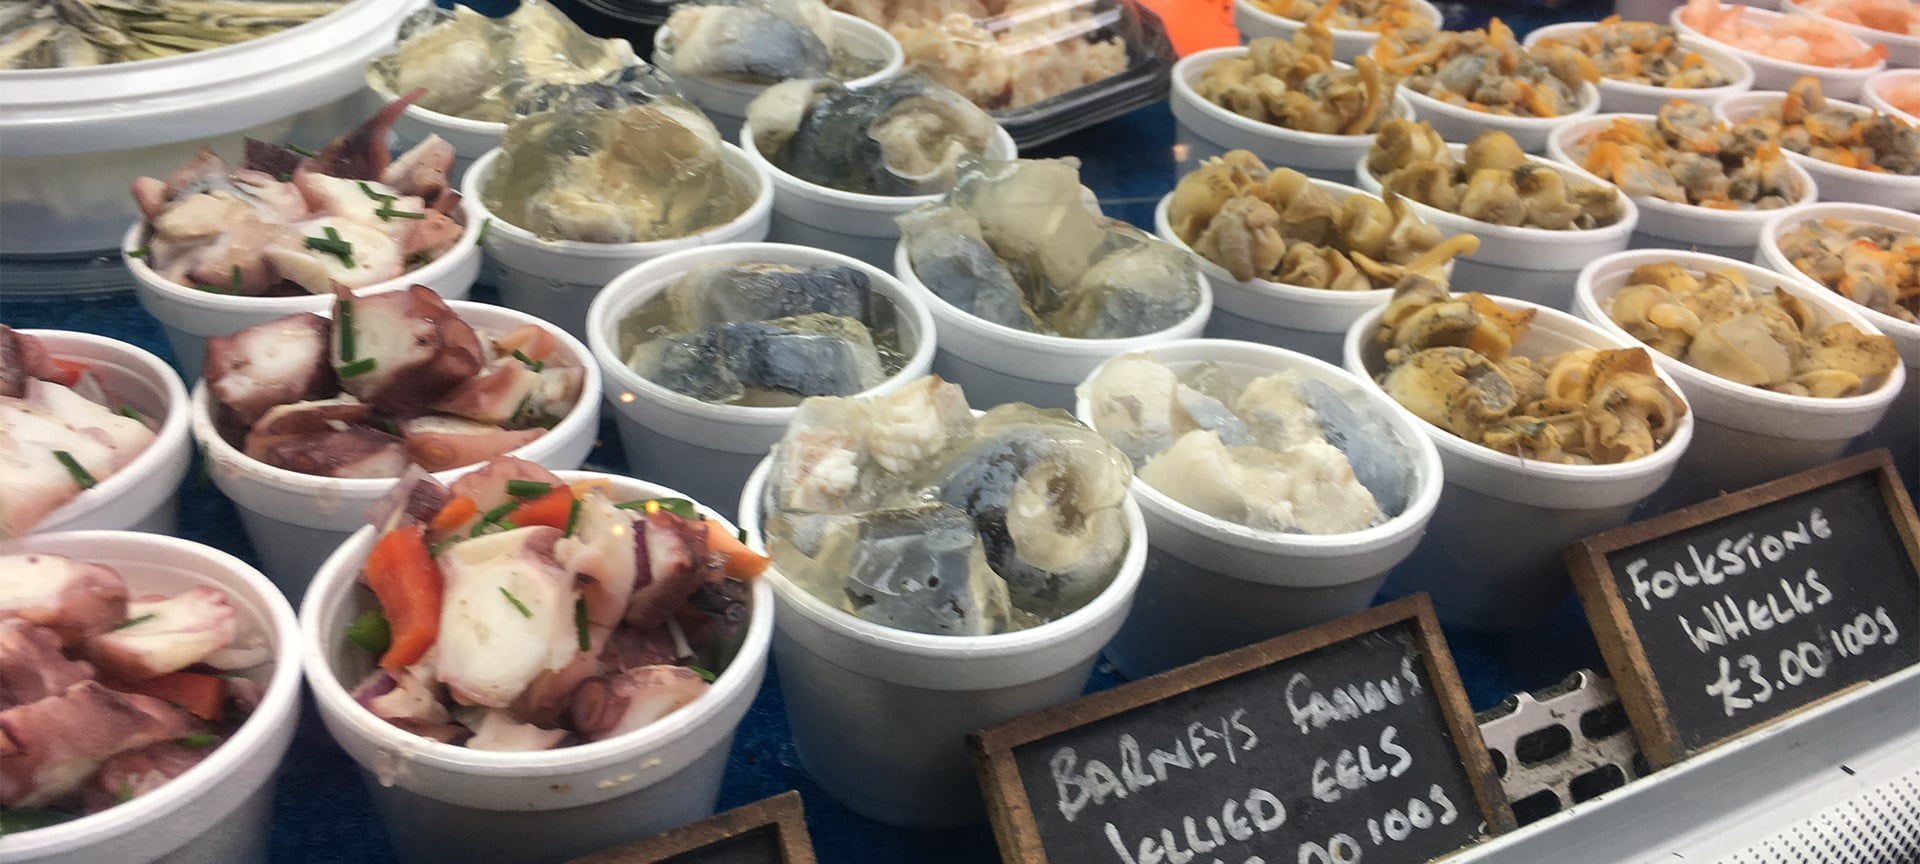 If you had to name one staple food of the East End of London, it would no doubt be jellied eels. Jellied eels and London have a history that is hundreds of years old, going back to the times when the eel population was thriving in the River Thames. Today, despite the eels disappearing from the river, only a handful of local merchants remain.